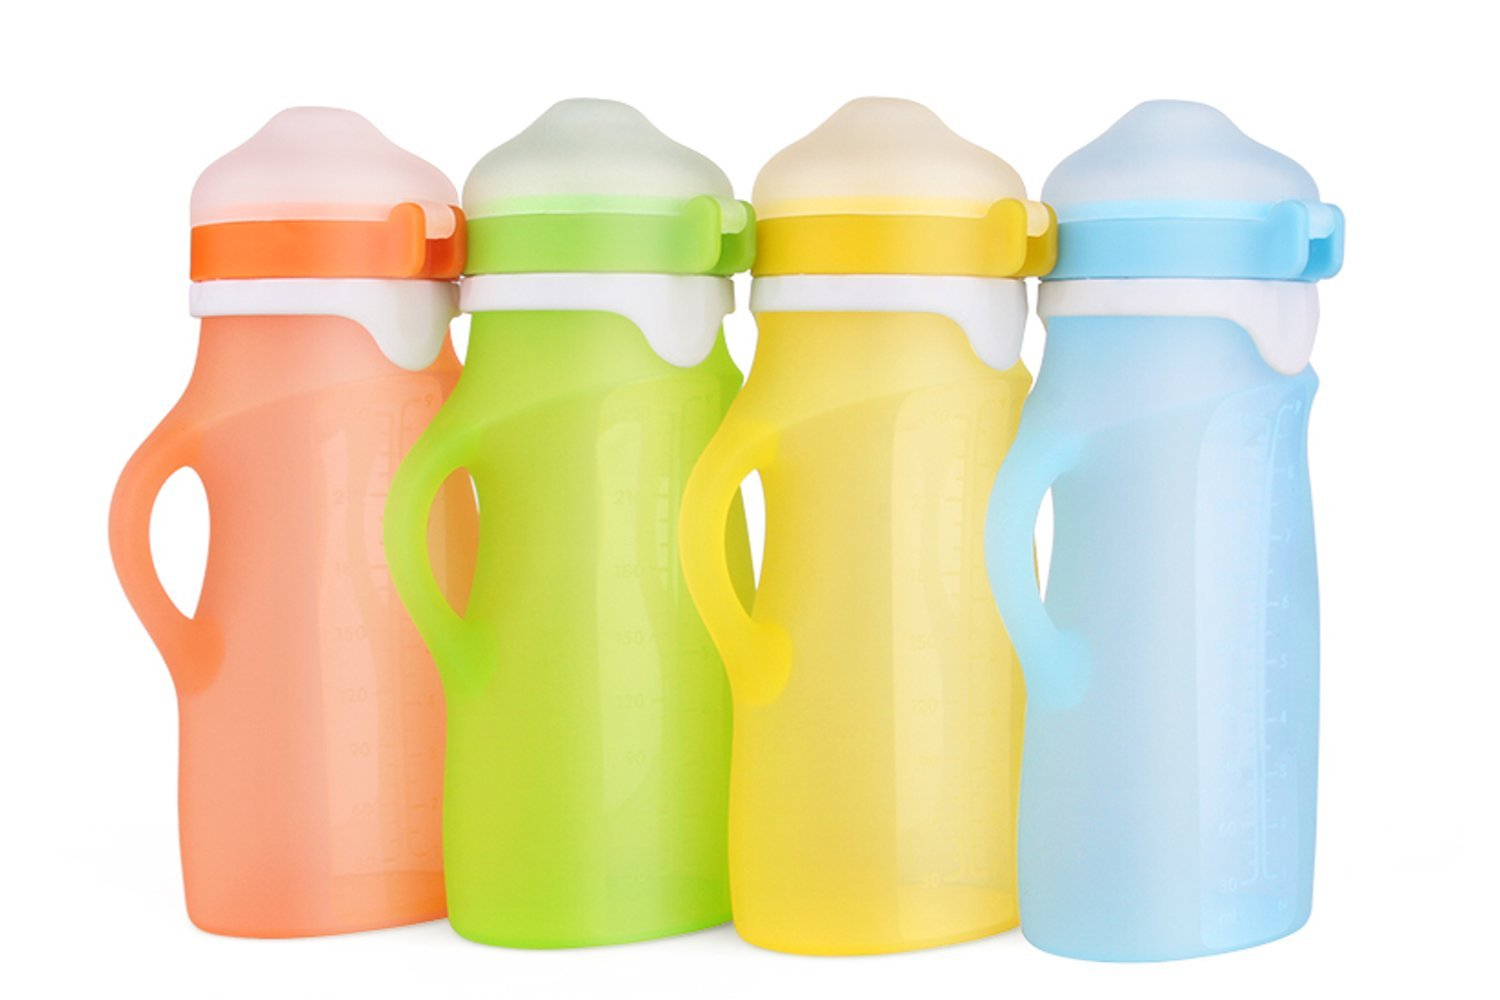 Kids Reusable Squeeze Pouch – Portable and Collapsible Medical Grade Silicone Bottle for Food and Drinks - Great For Travel and Easy Feeding – 9 Ounces by Wyatt Carter Baby (Blue)